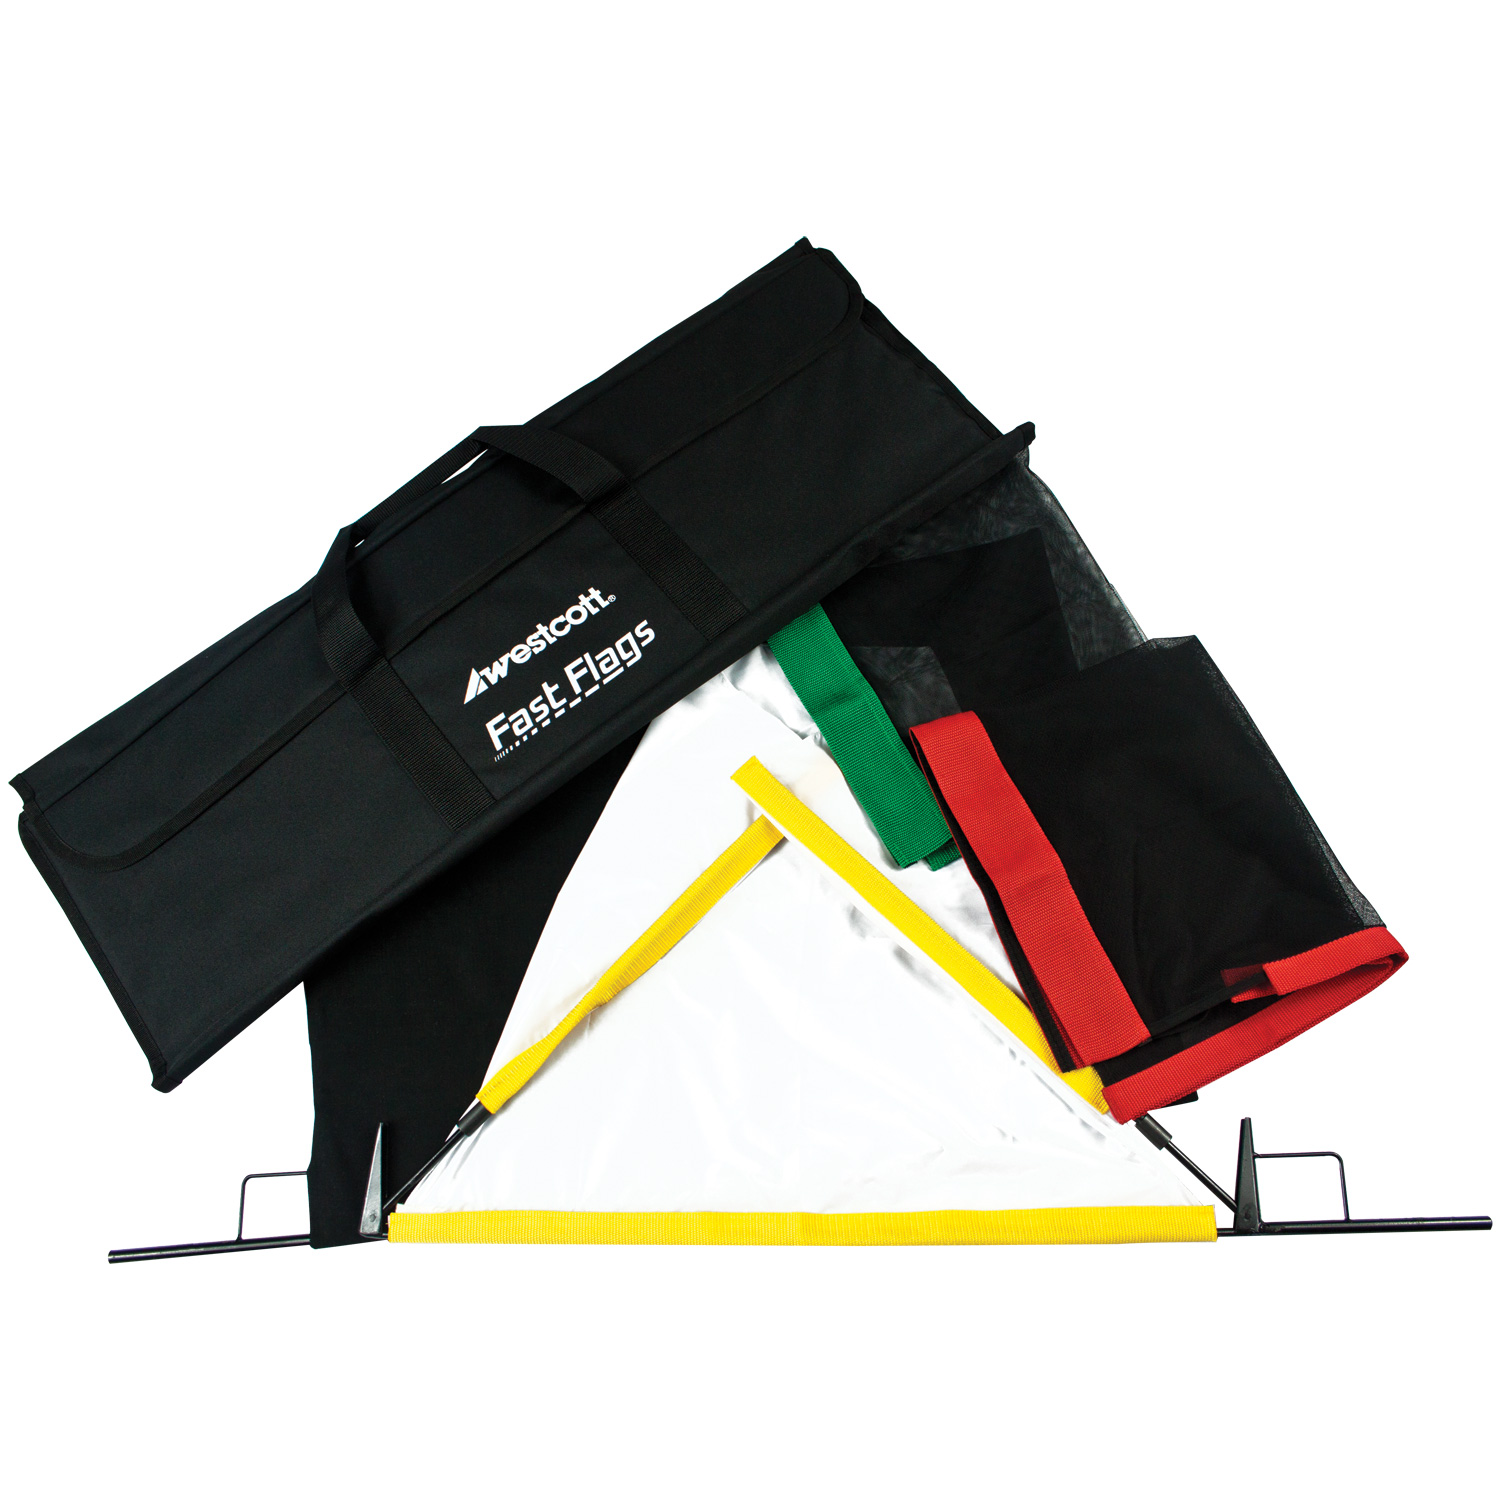 Fast Flag 24-in. x 36-in. Kit